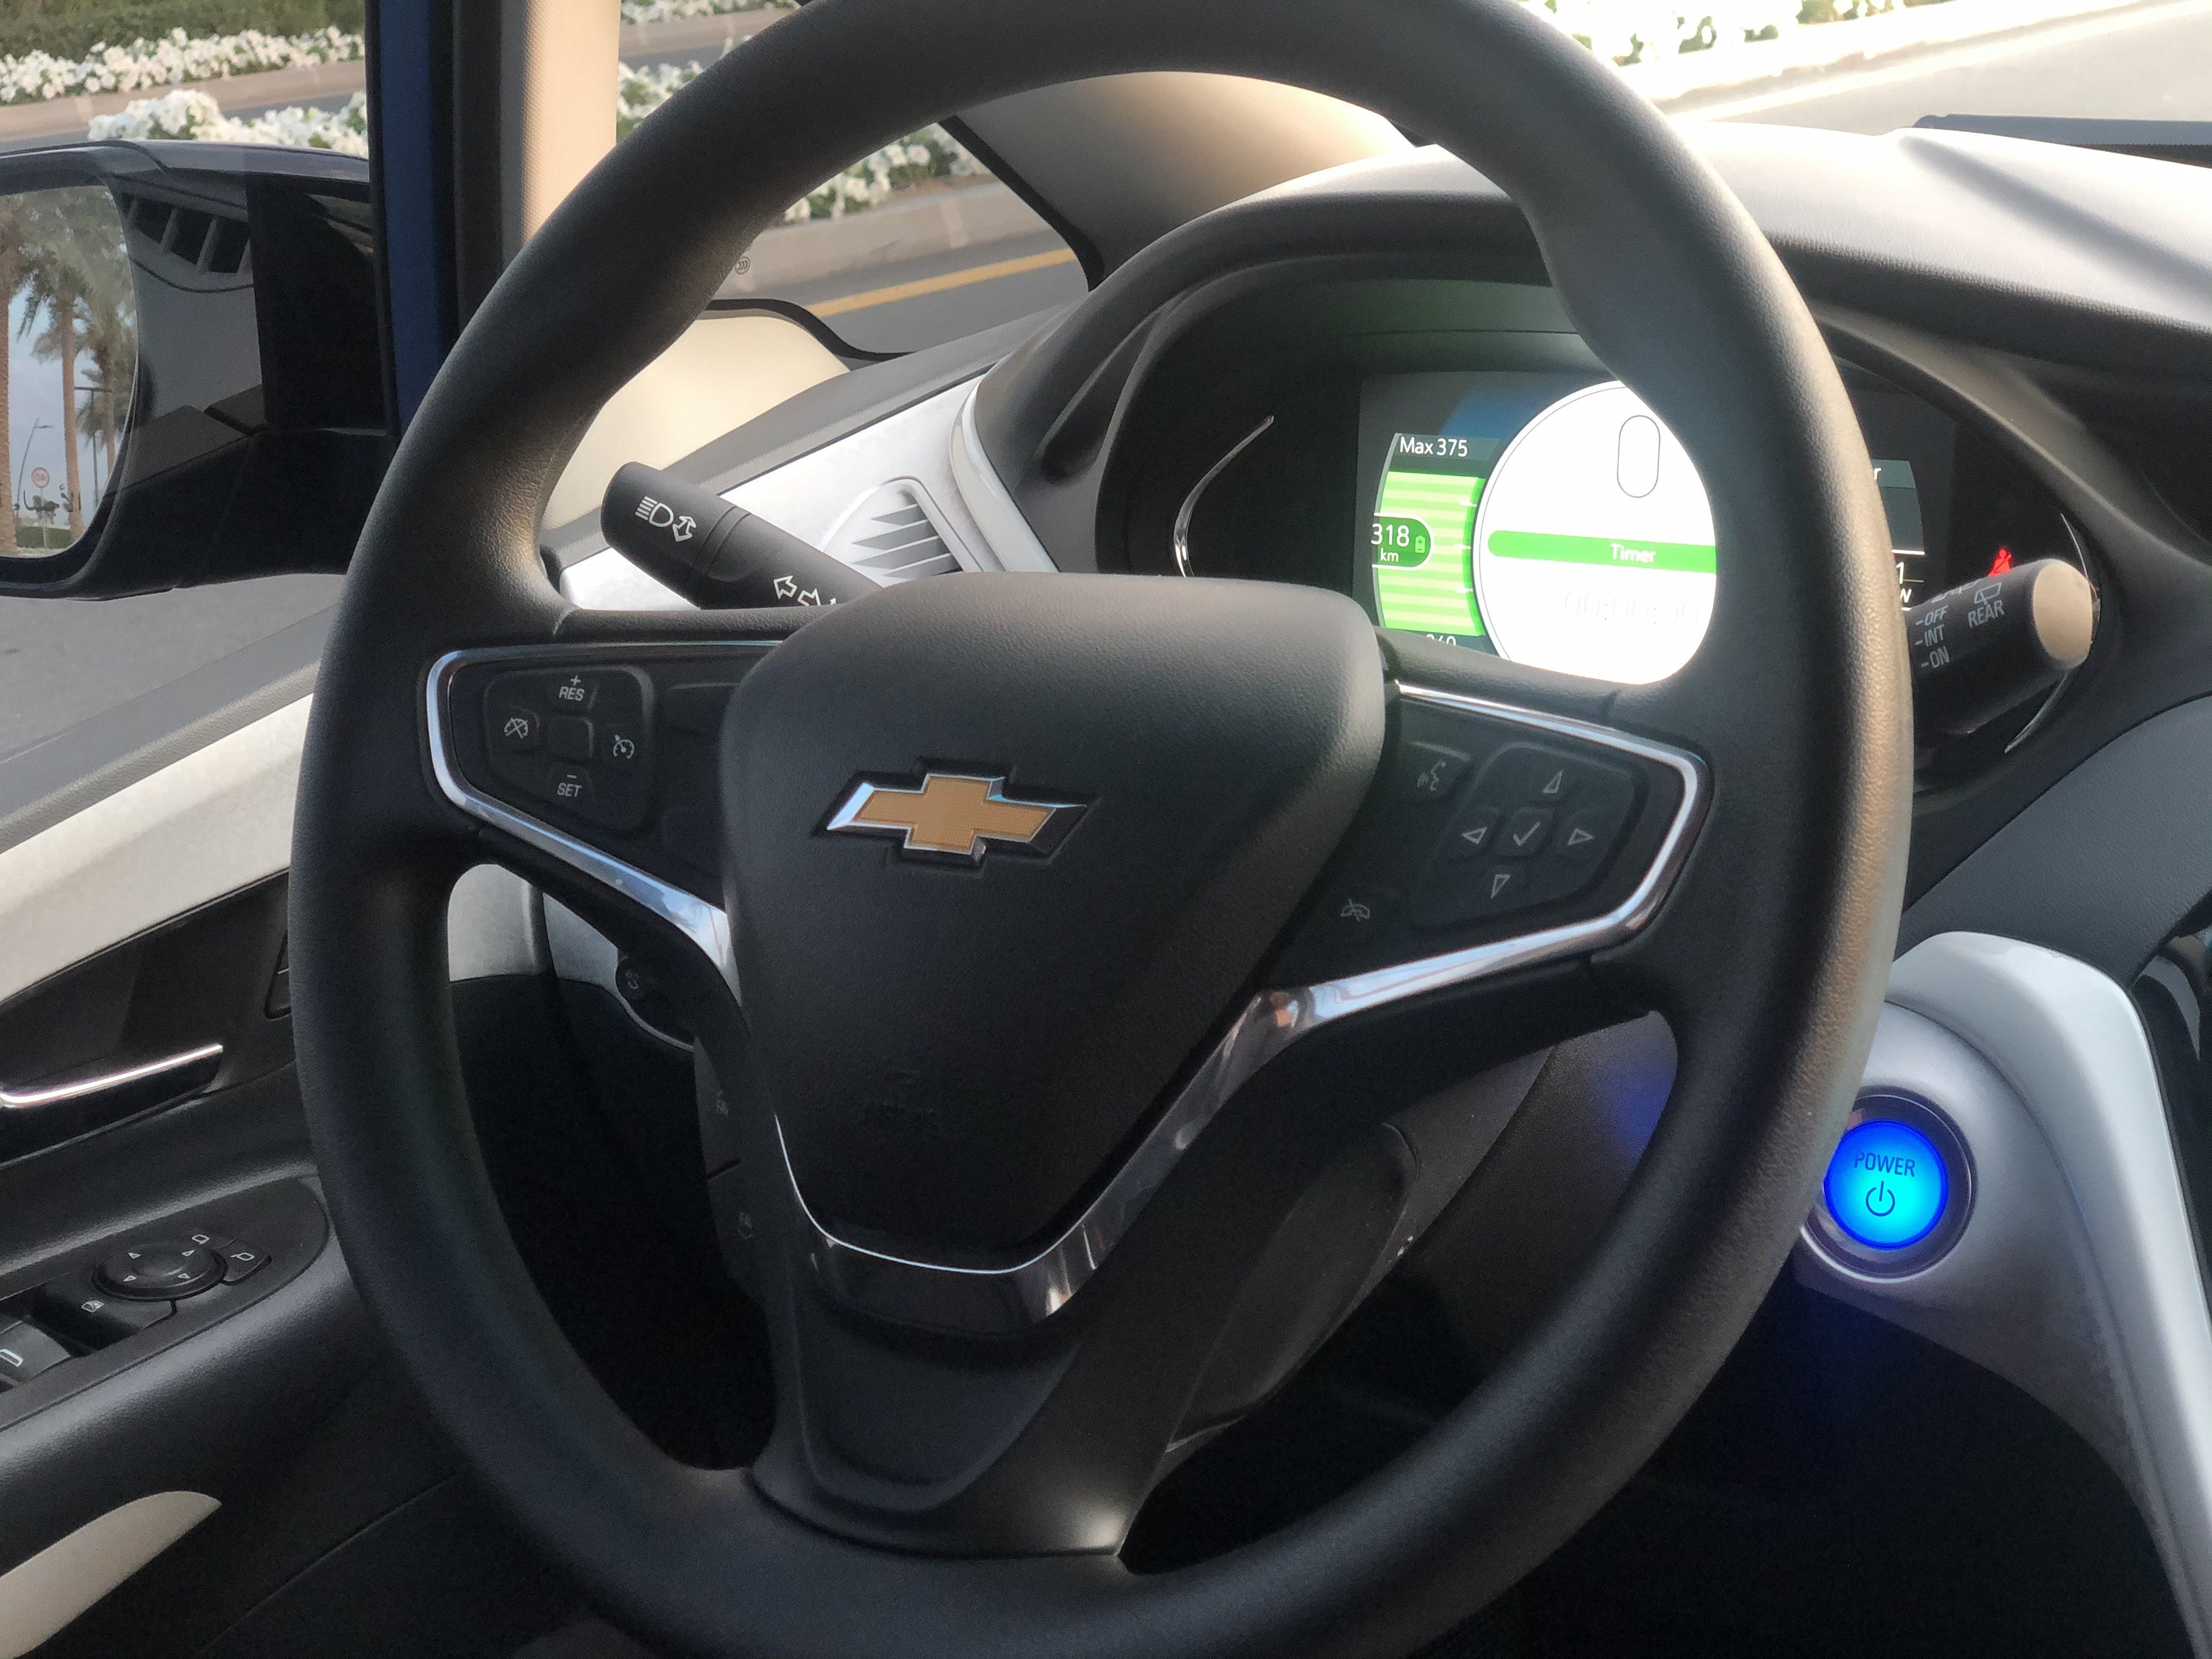 2019 CHEVROLET BOLT EV Interior Steering